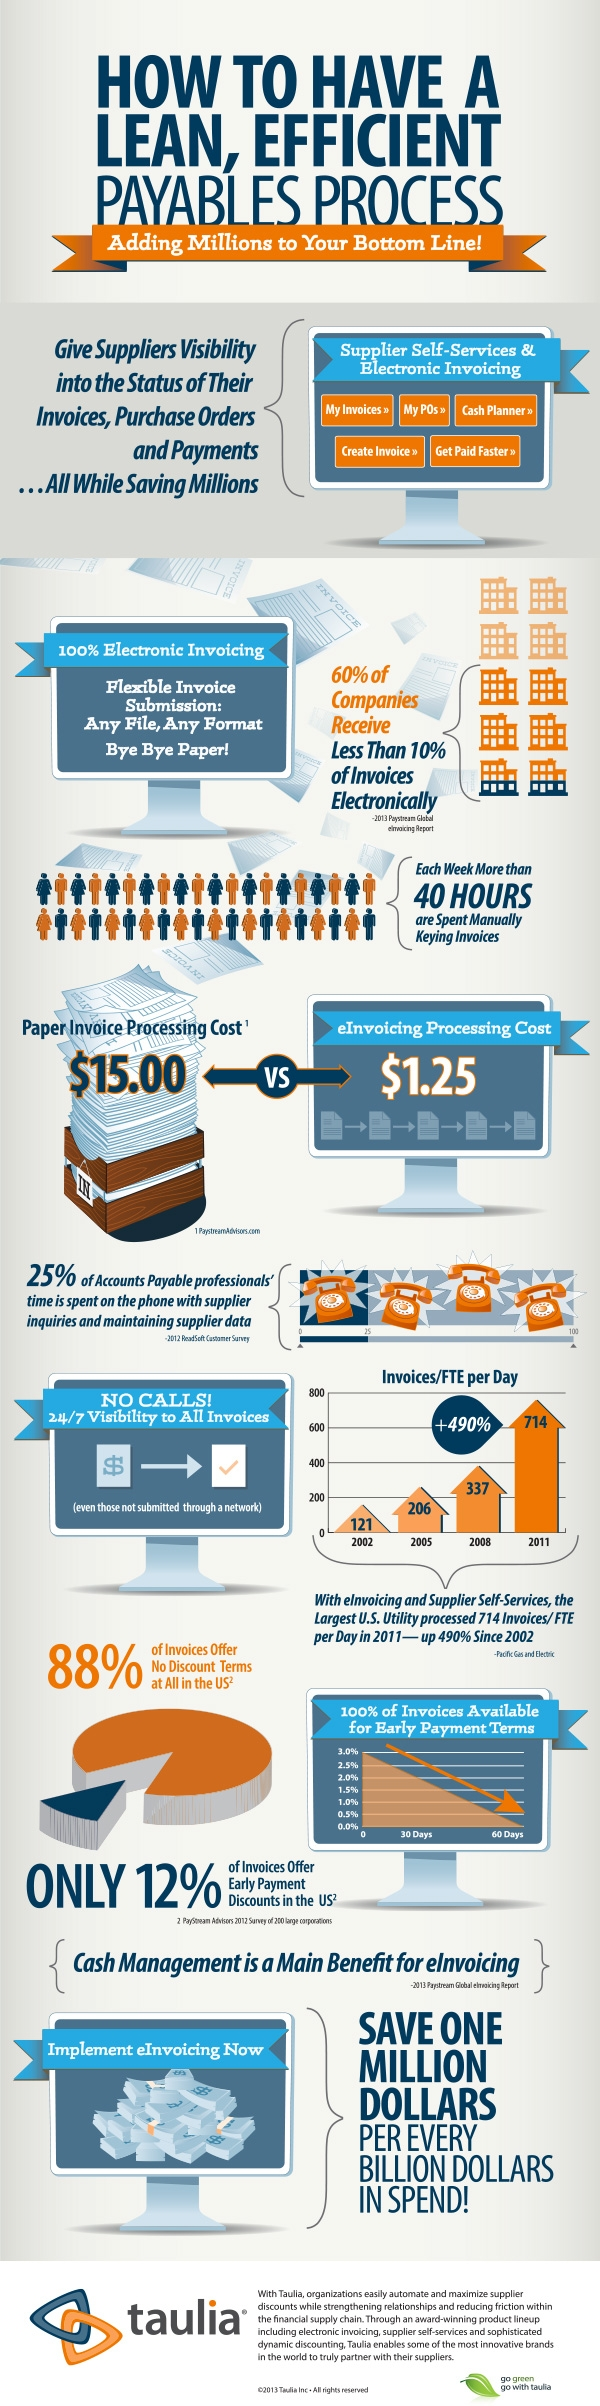 10 invoice processing best practices brandongaille invoice processing best practices